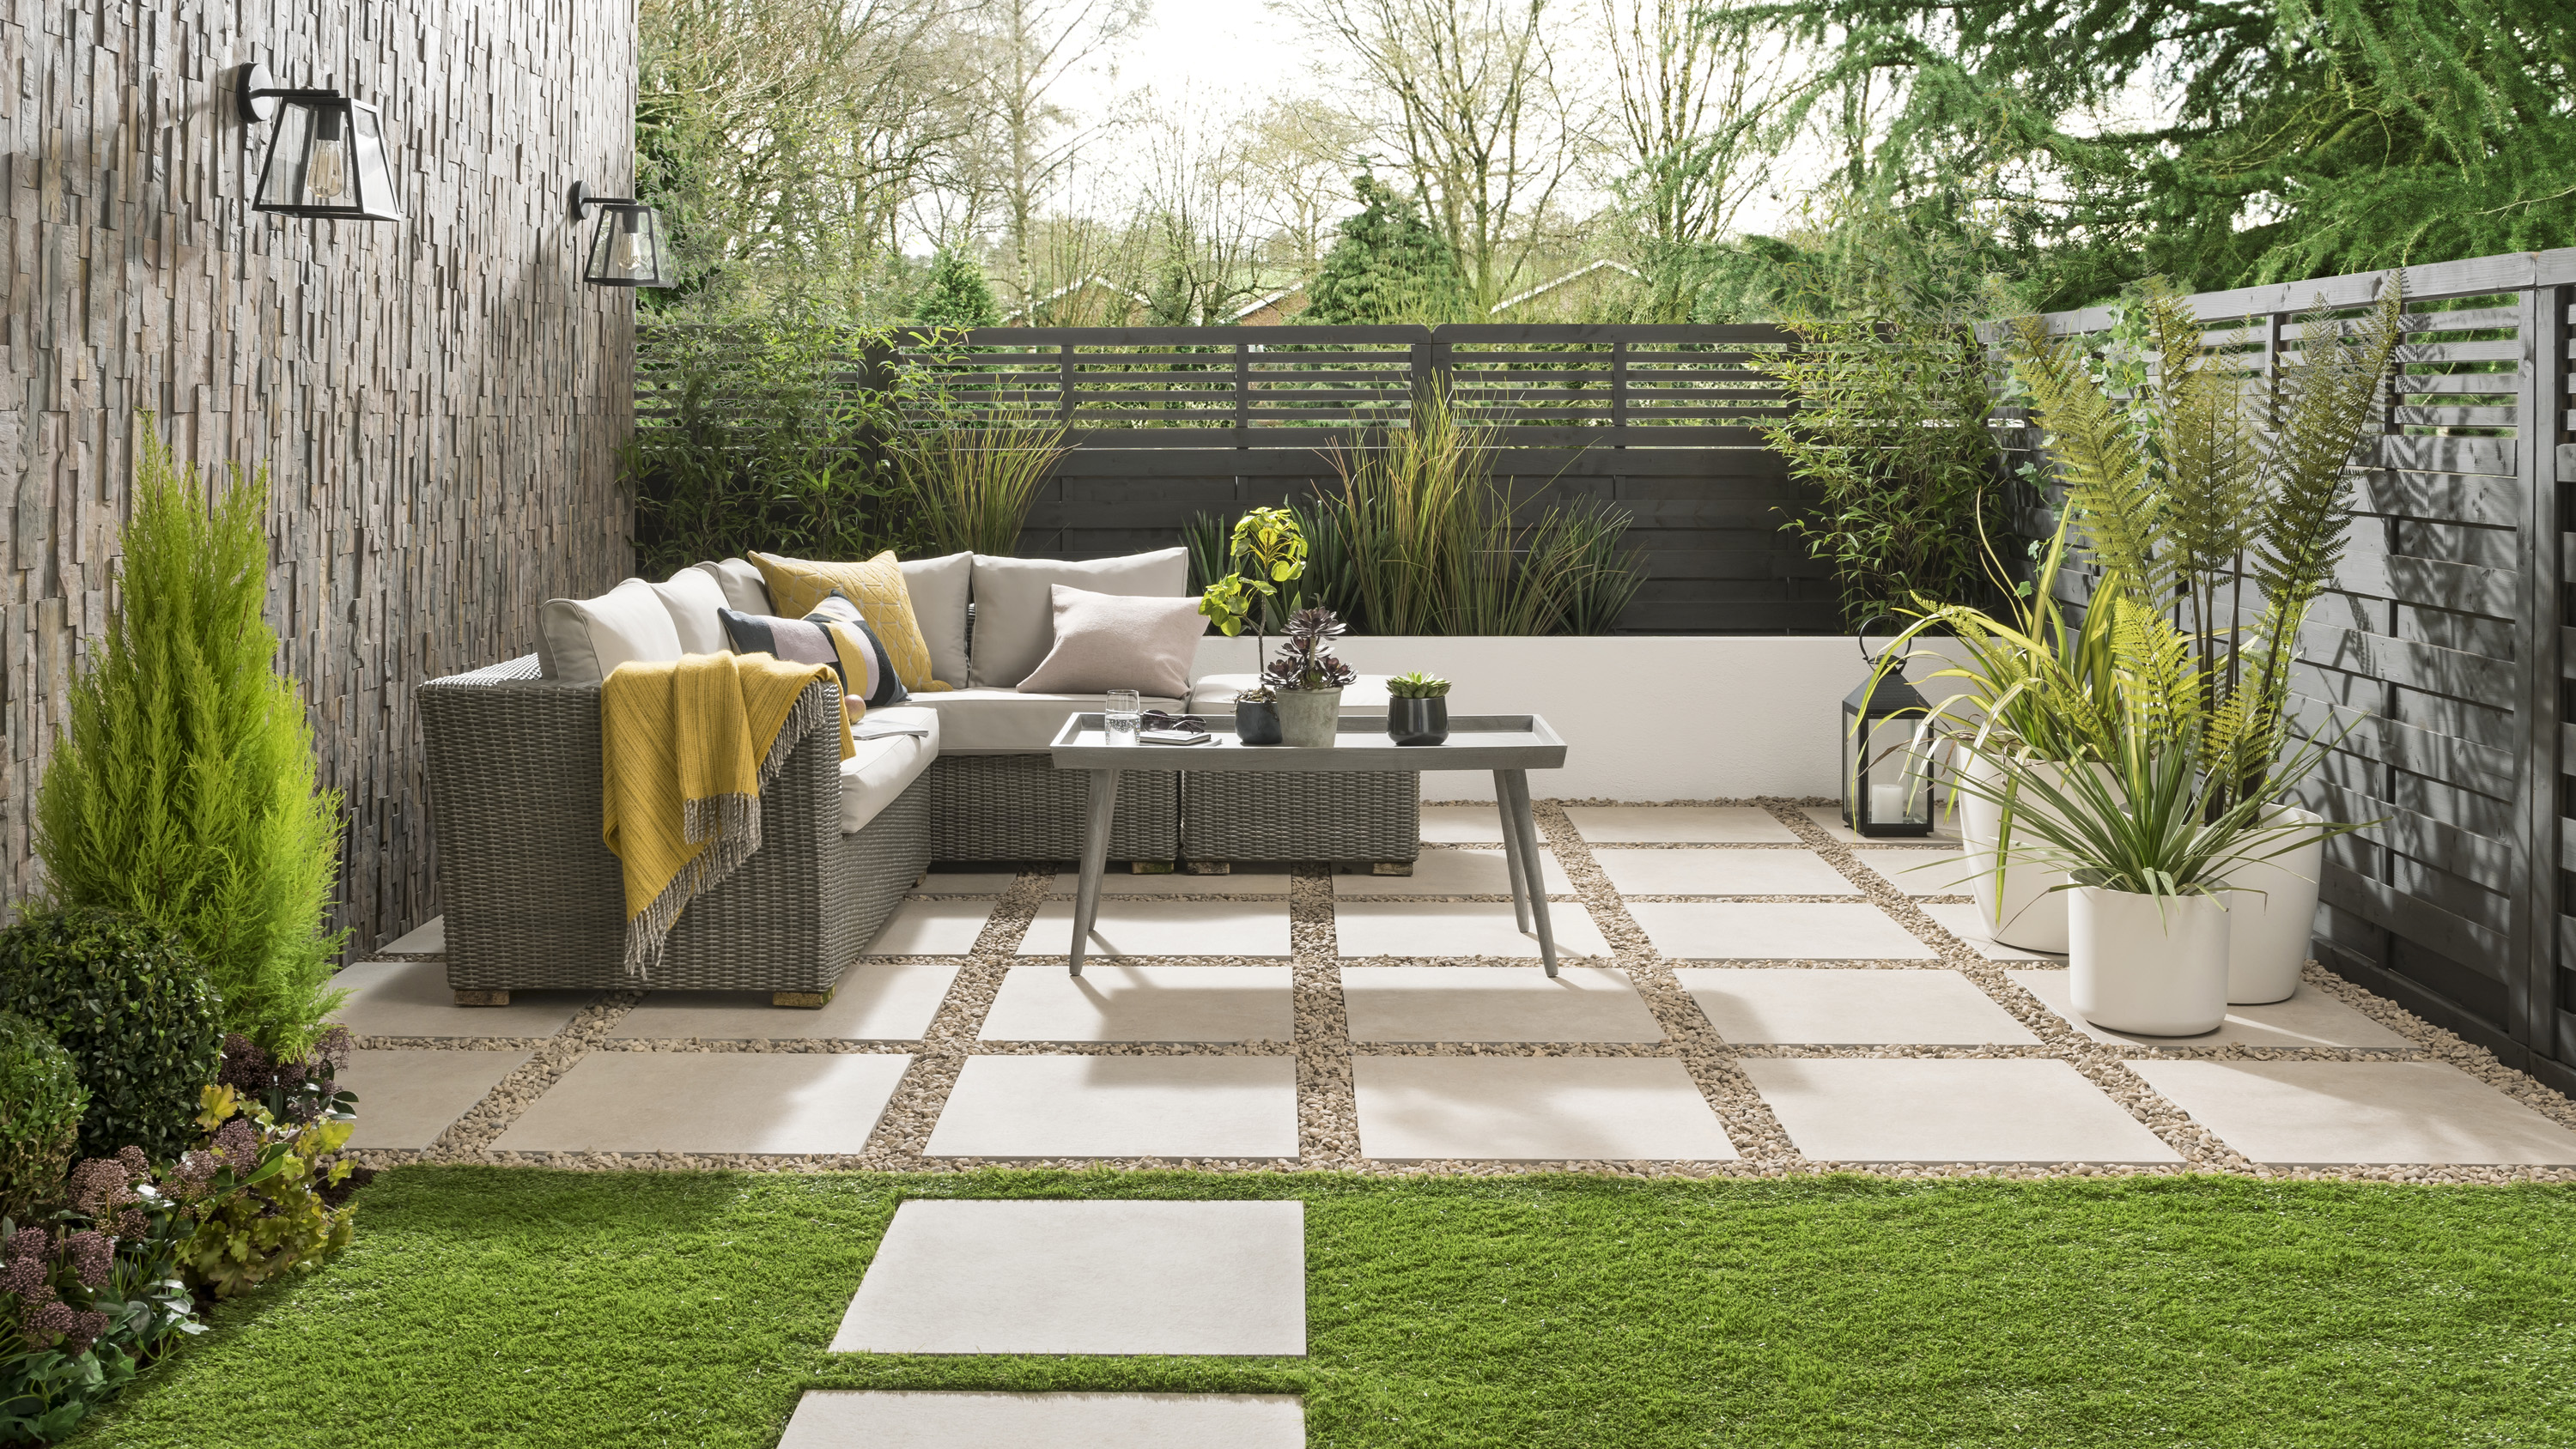 37 Garden Design Ideas All The Inspiration You Need To Transform Your Outdoor Space Gardeningetc